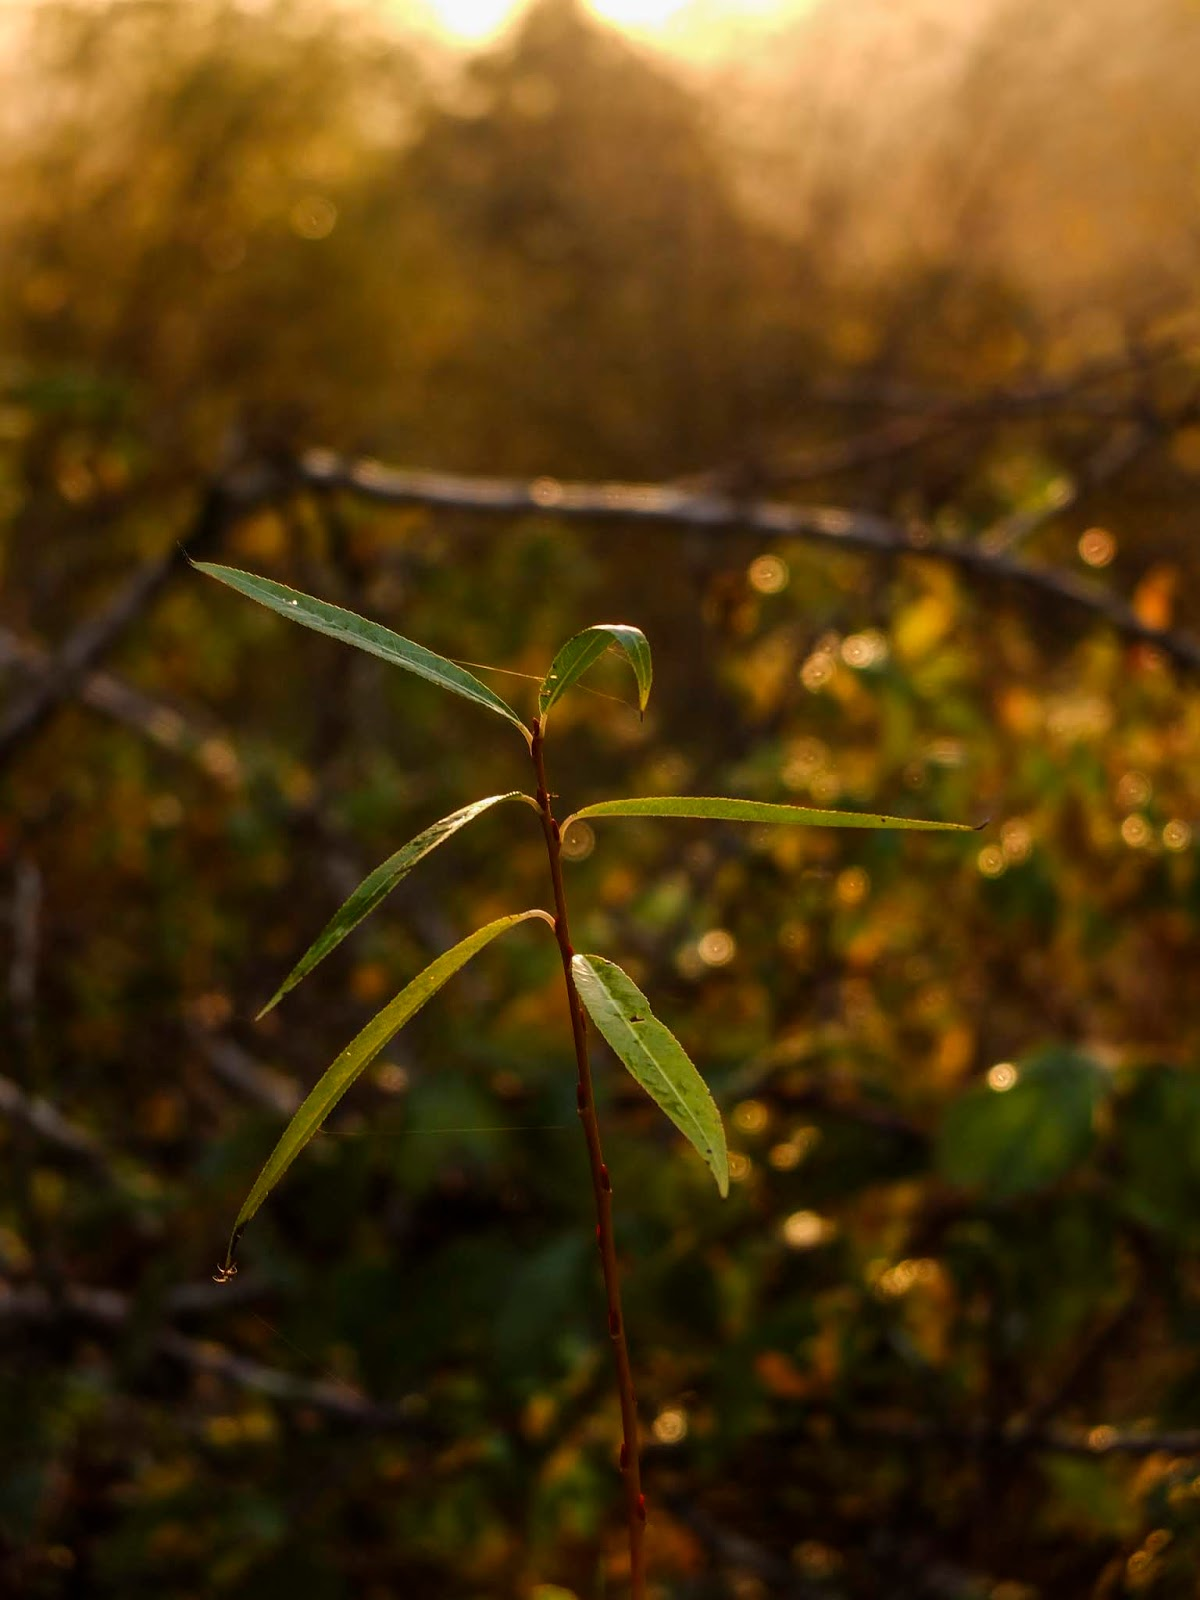 A close up of Willow tree shoot during golden sunset hour.